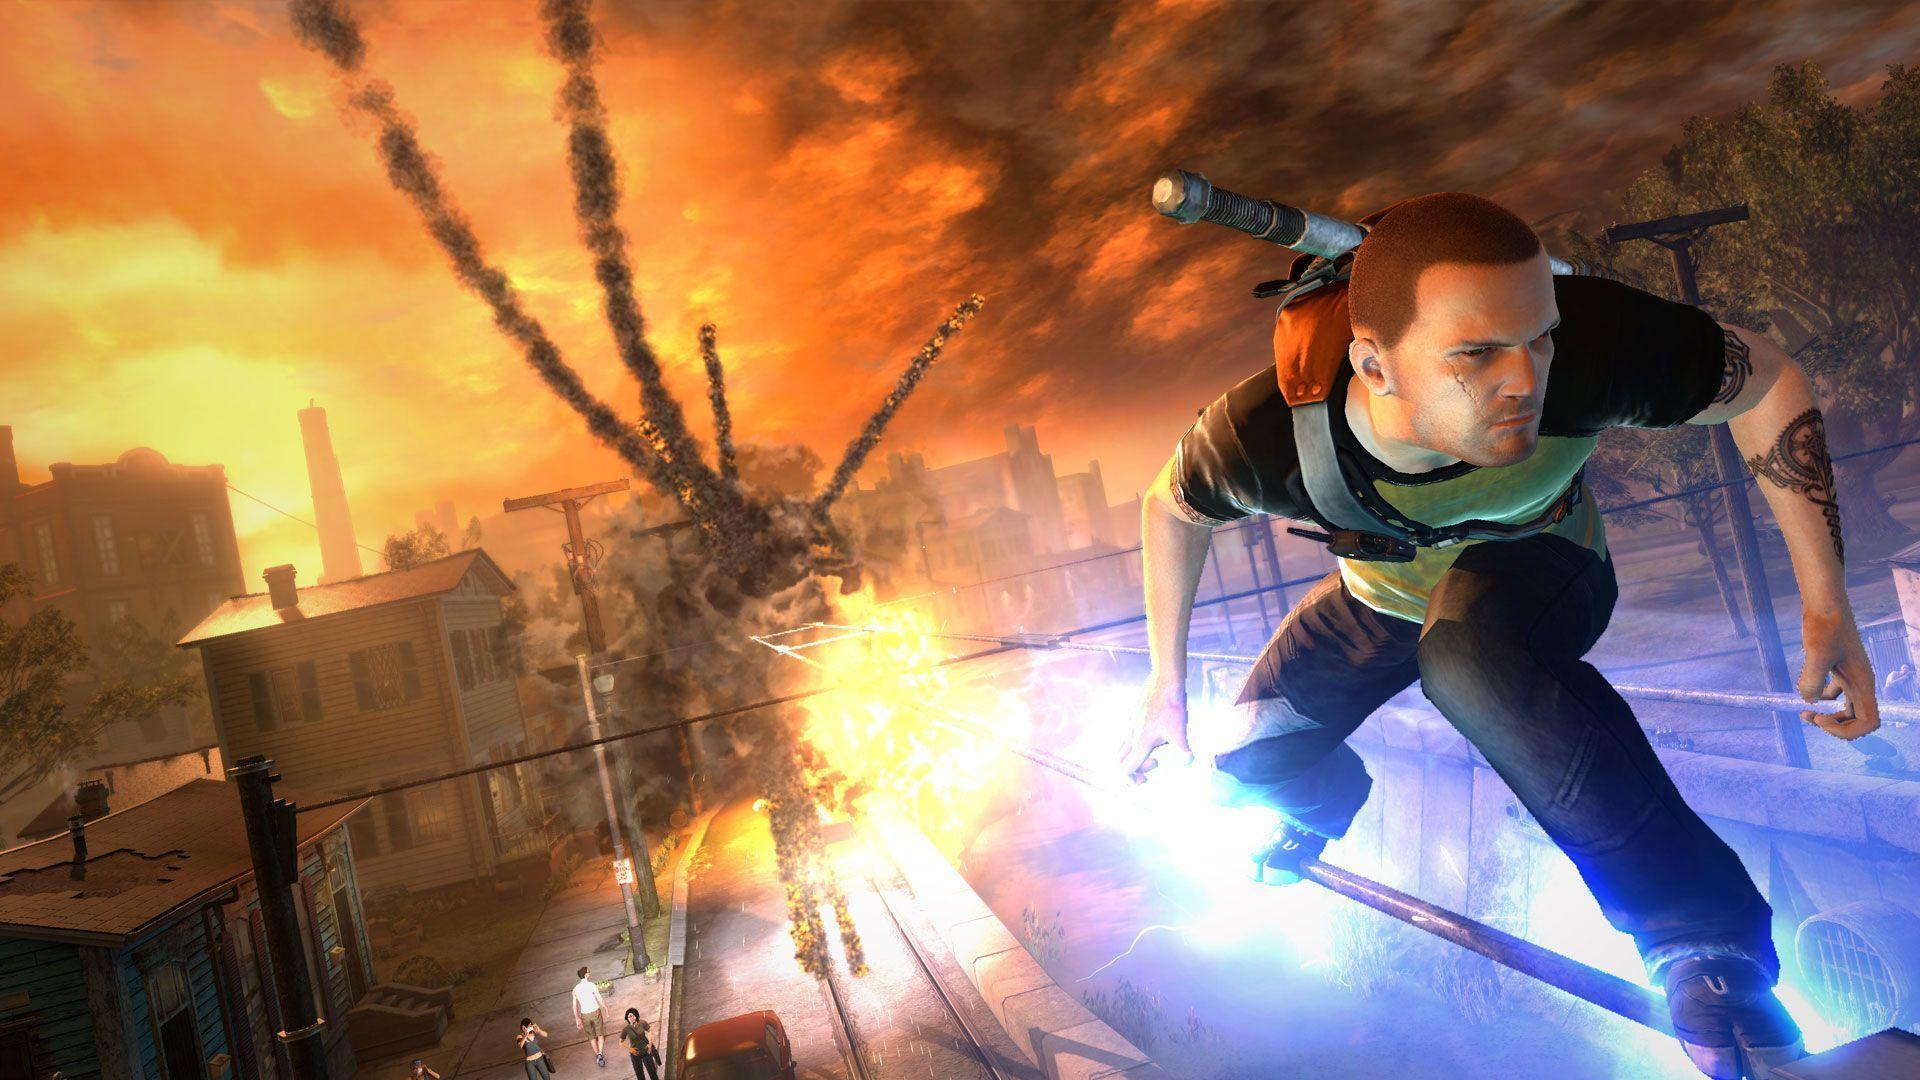 infamous 2 wallpapers wallpaper cave